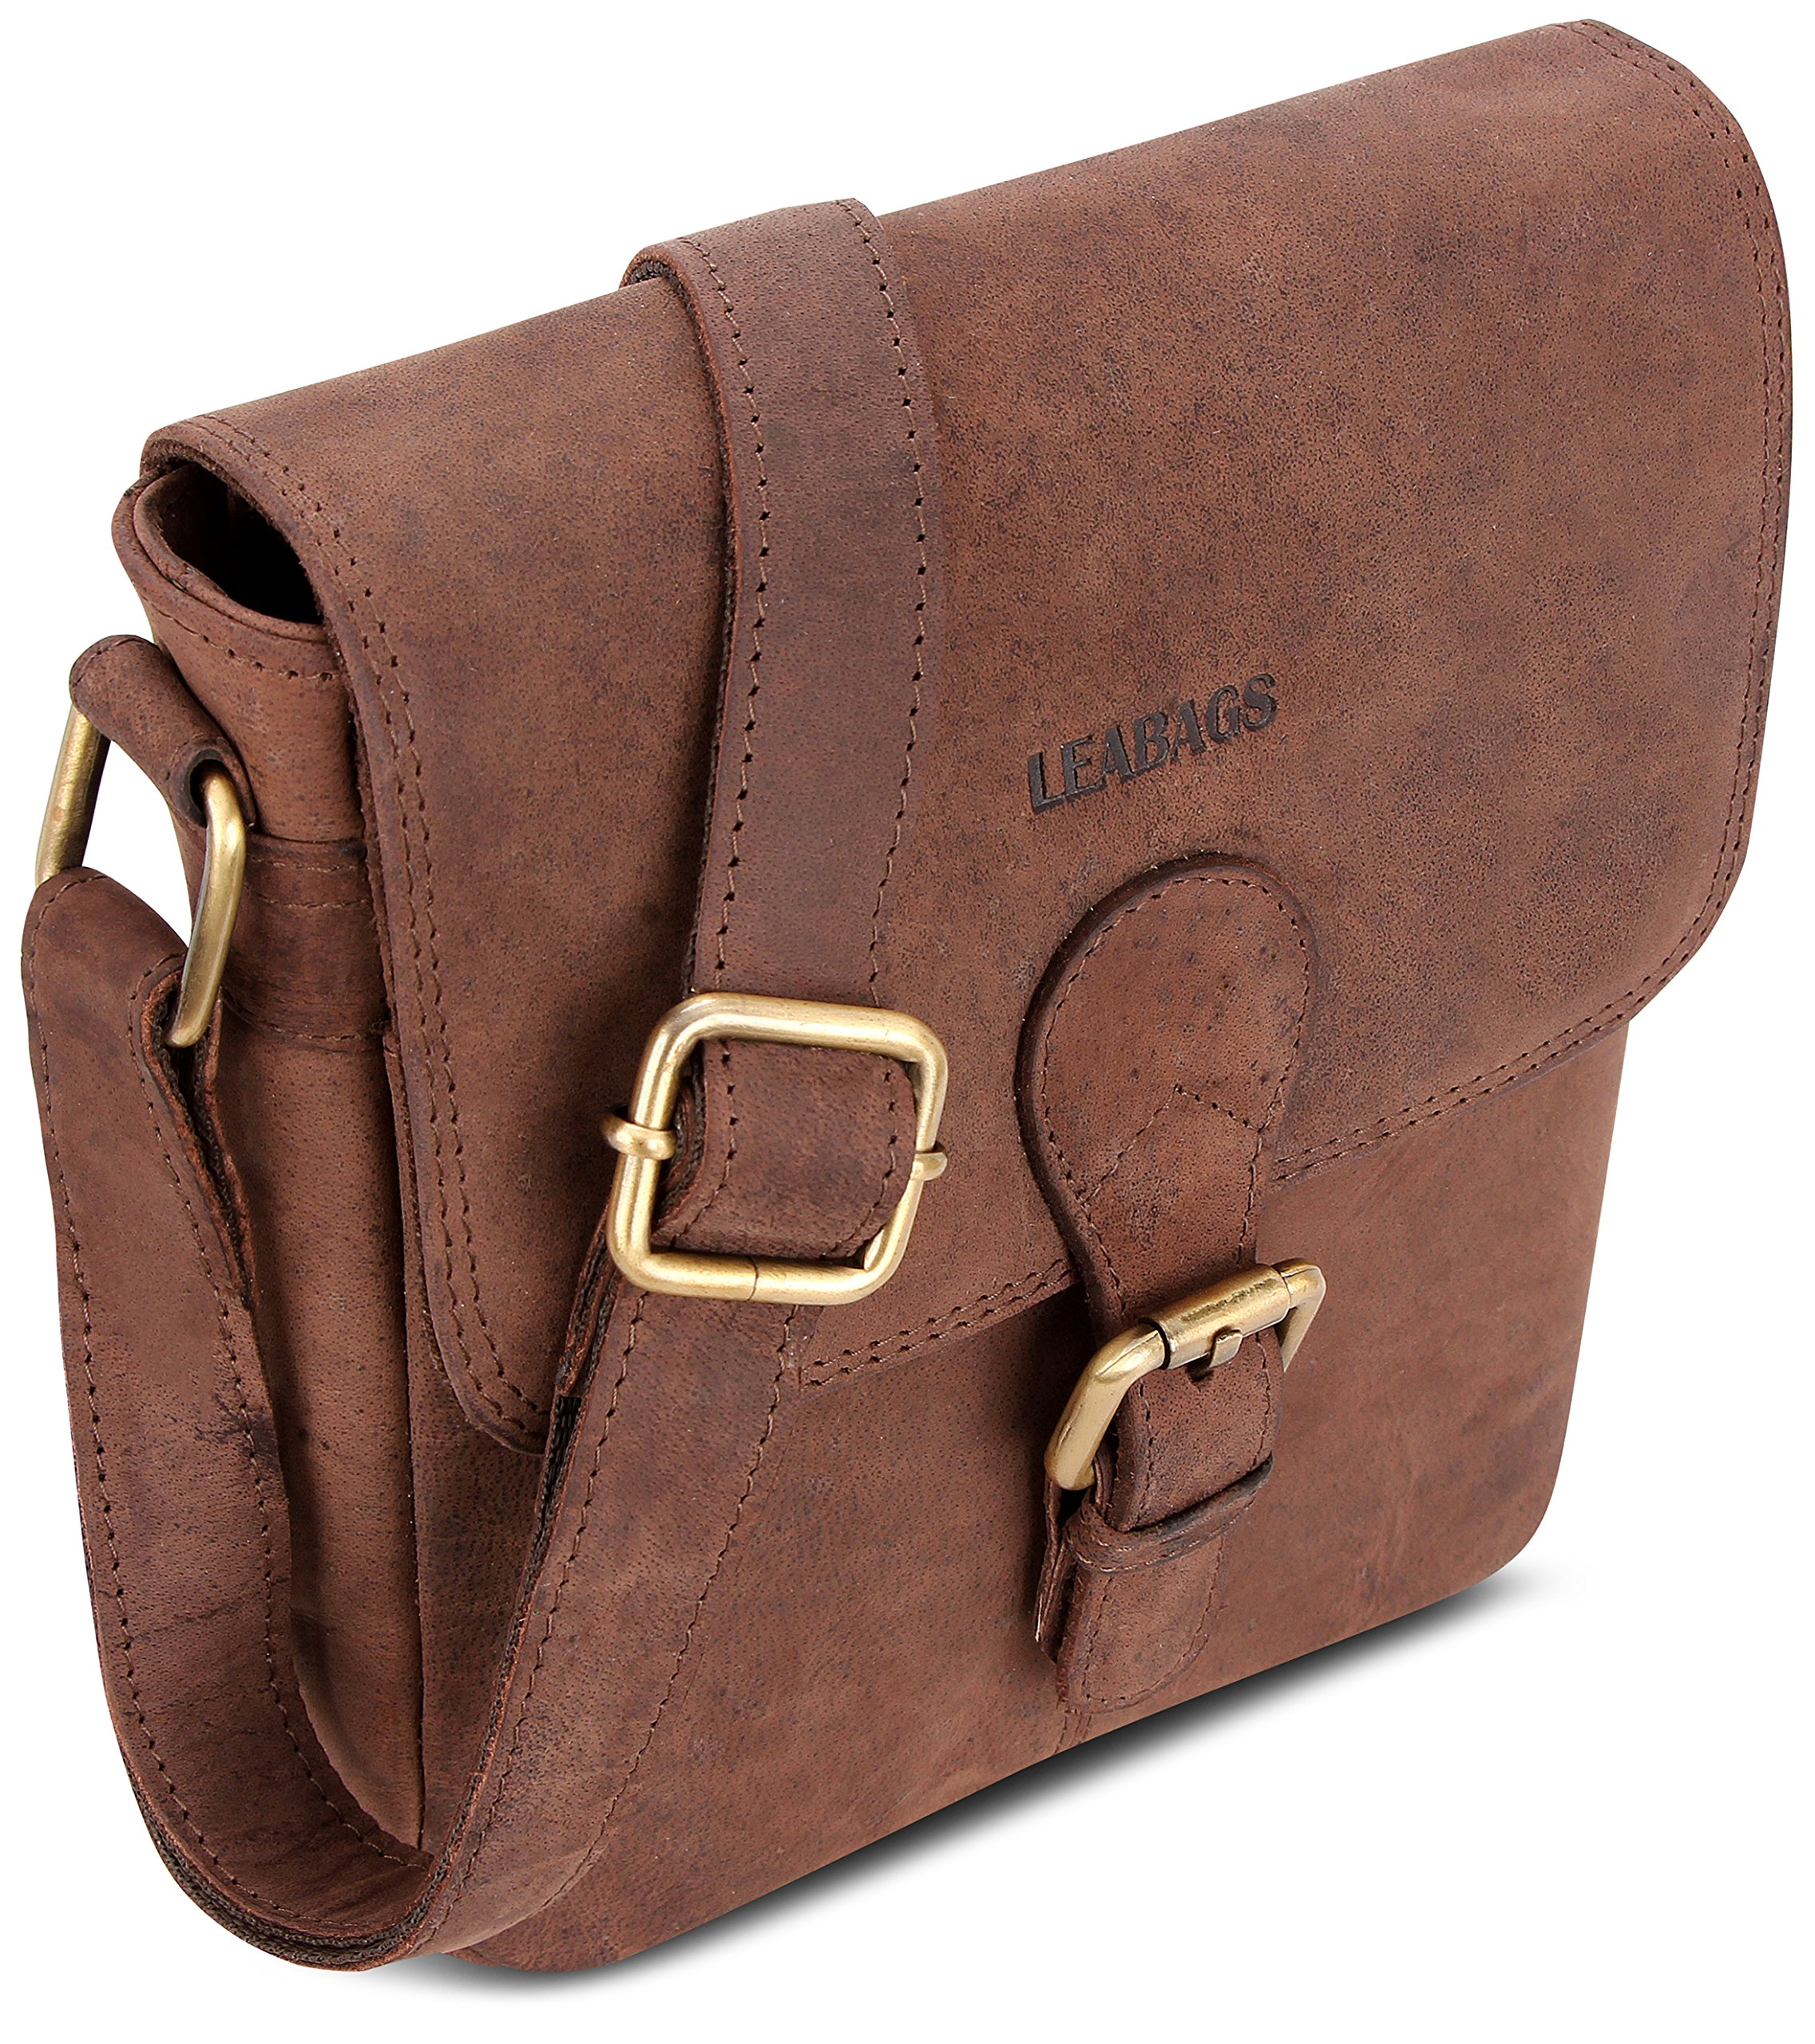 LEABAGS Weston genuine buffalo leather city bag in vintage style - Nutmeg by LEABAGS (Image #4)